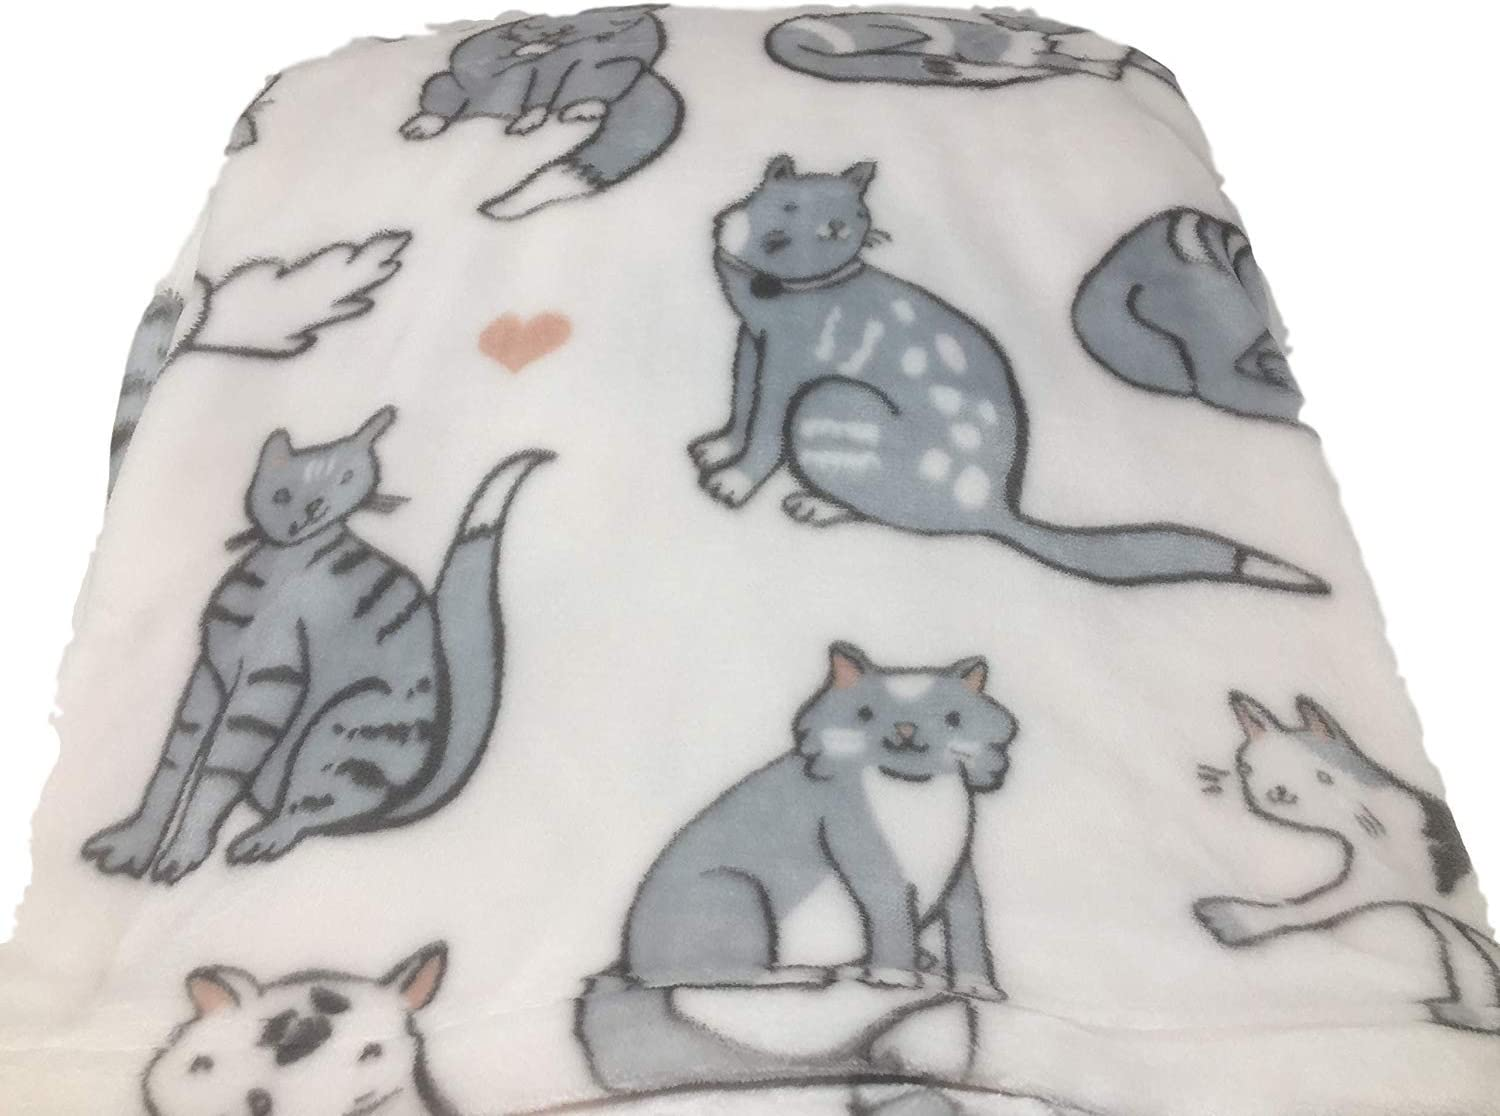 Oversized Cats Soft Plush Throw 60 X 70 Home Kitchen